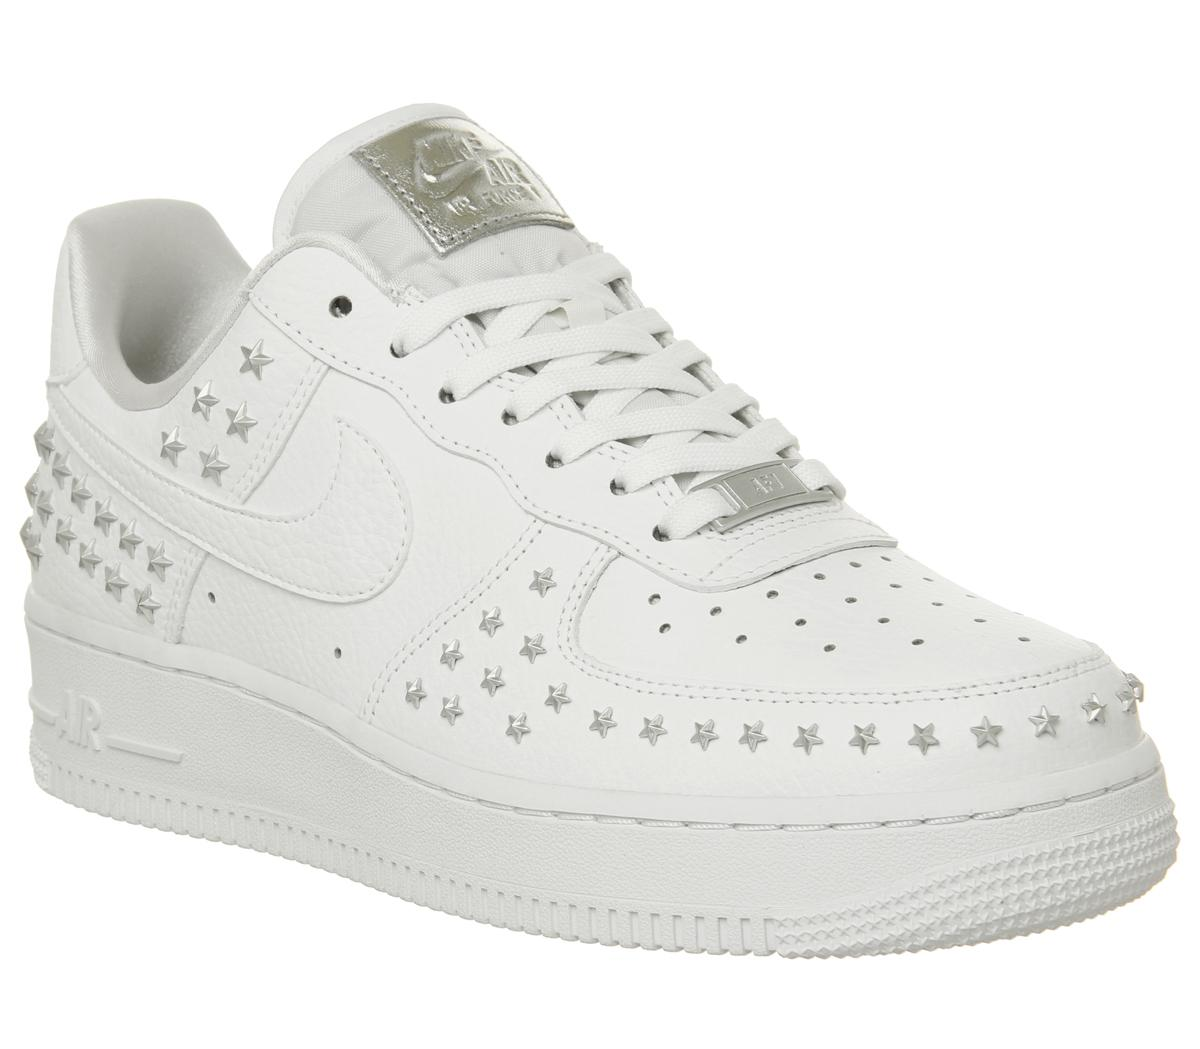 Nike Air Force 1 07 Trainers White Star